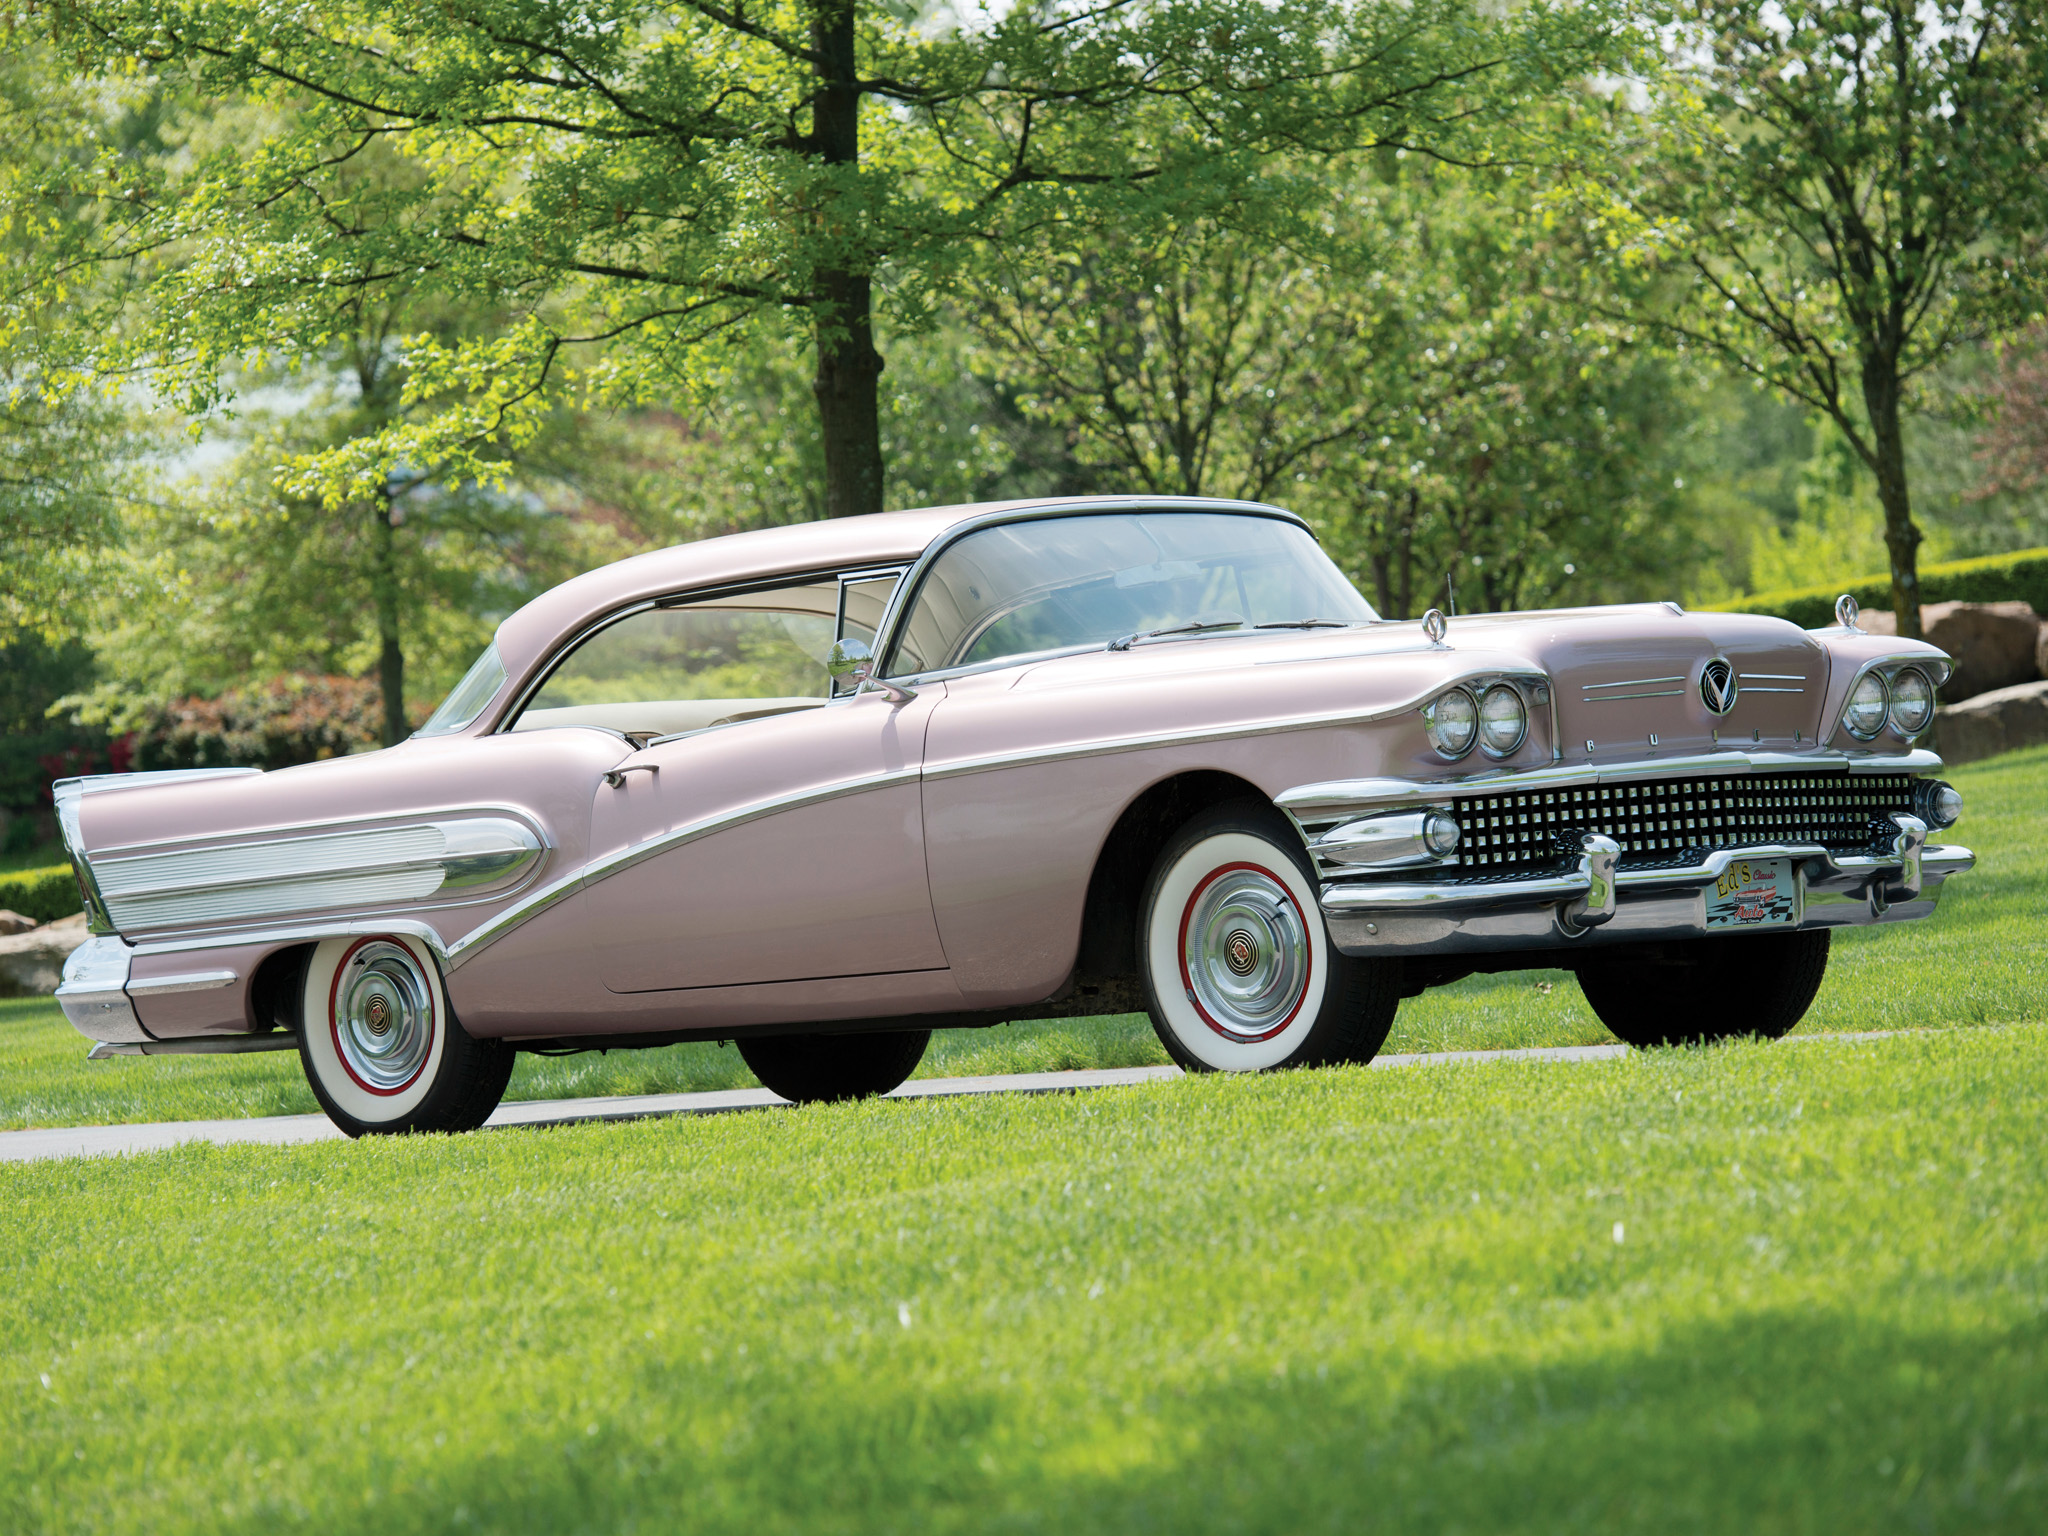 Cars 2 Wallpaper 1958 Buick Special Riviera Hardtop Coupe 46r Retro